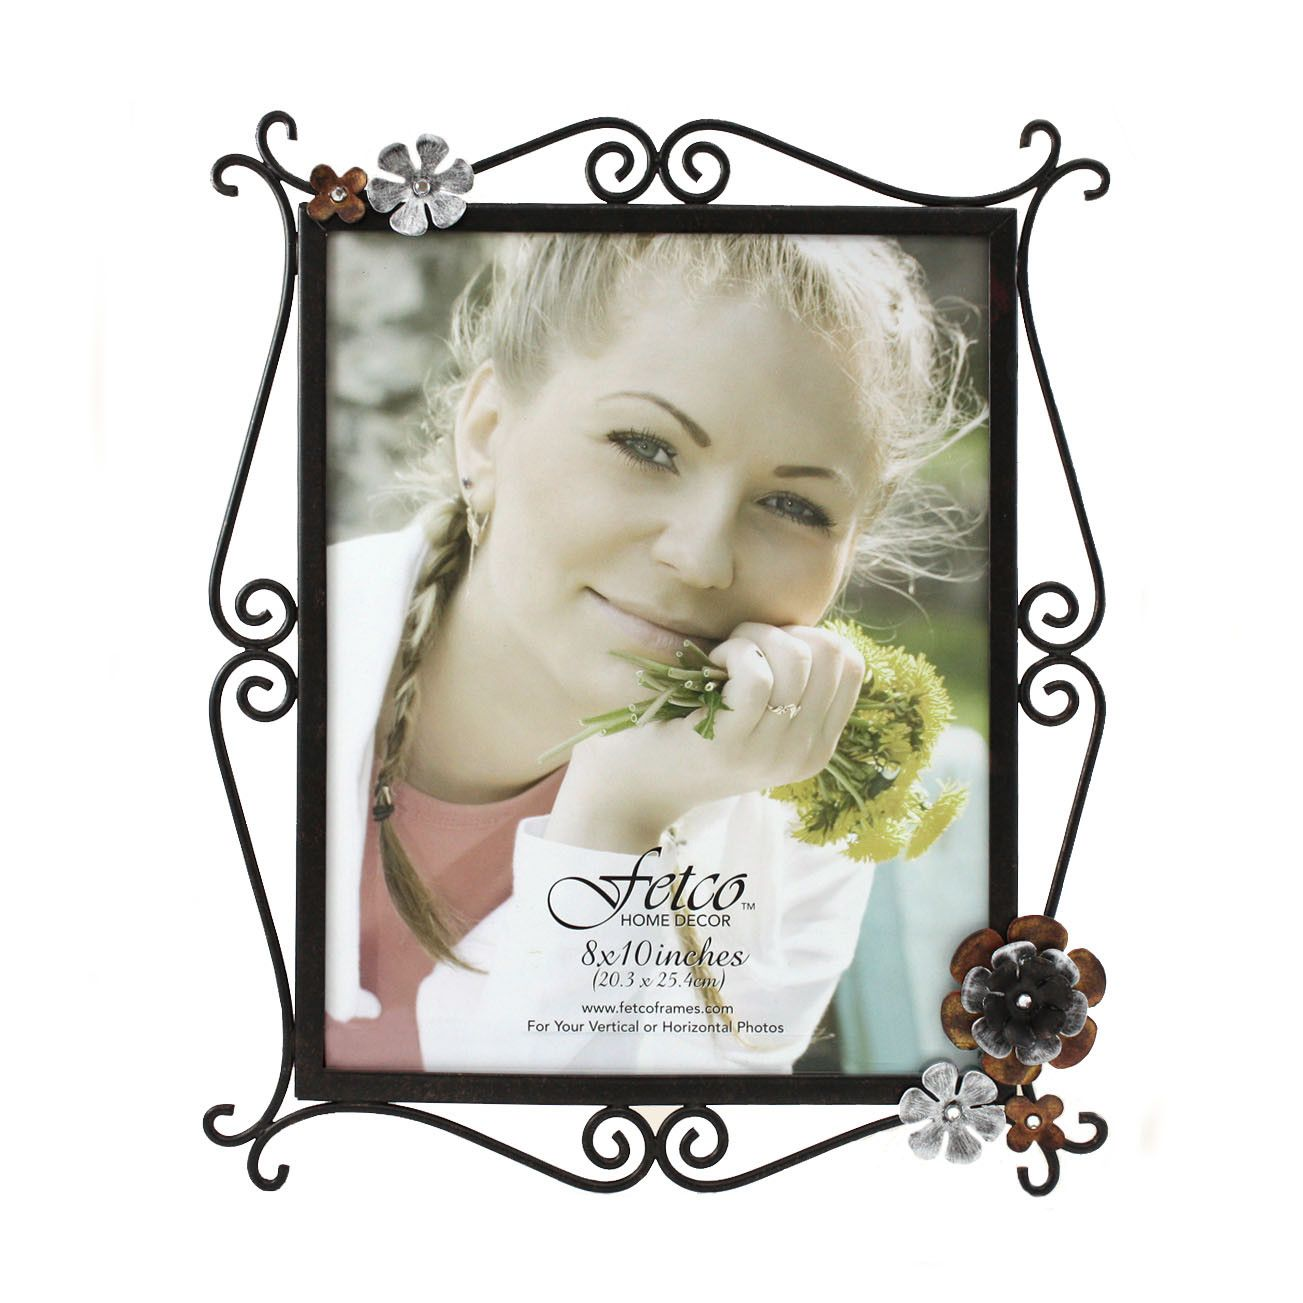 Fetco home decor petals lowndes burnished picture frame picture find the biggest selection of wall table top frames from fetco home dcor at the lowest prices jeuxipadfo Gallery